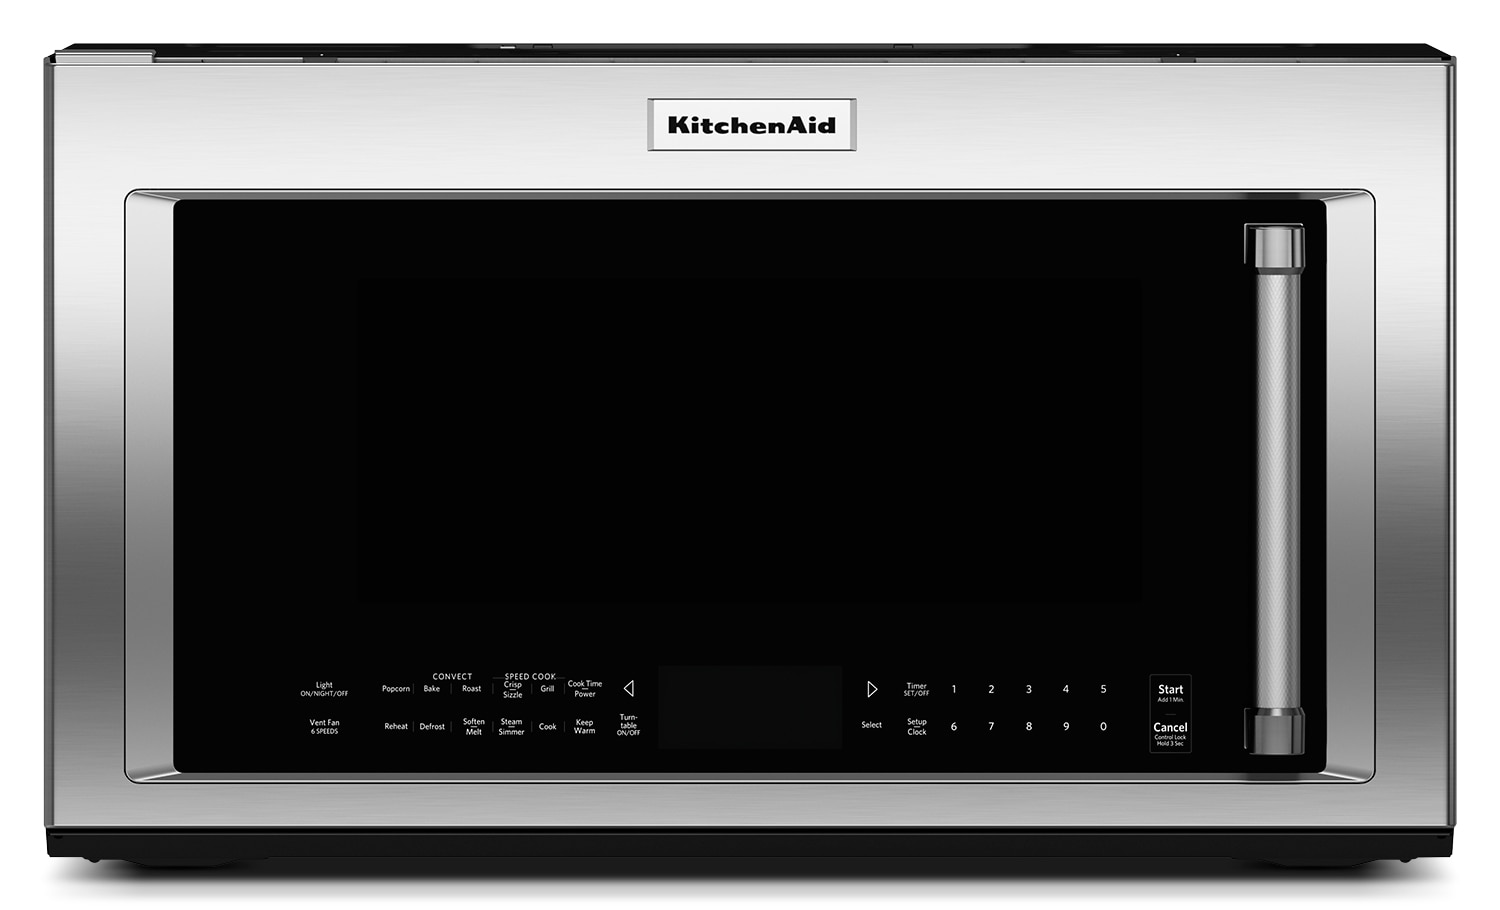 KitchenAid Stainless Steel Microwave (1.9 Cu. Ft.) - YKMHP519ES